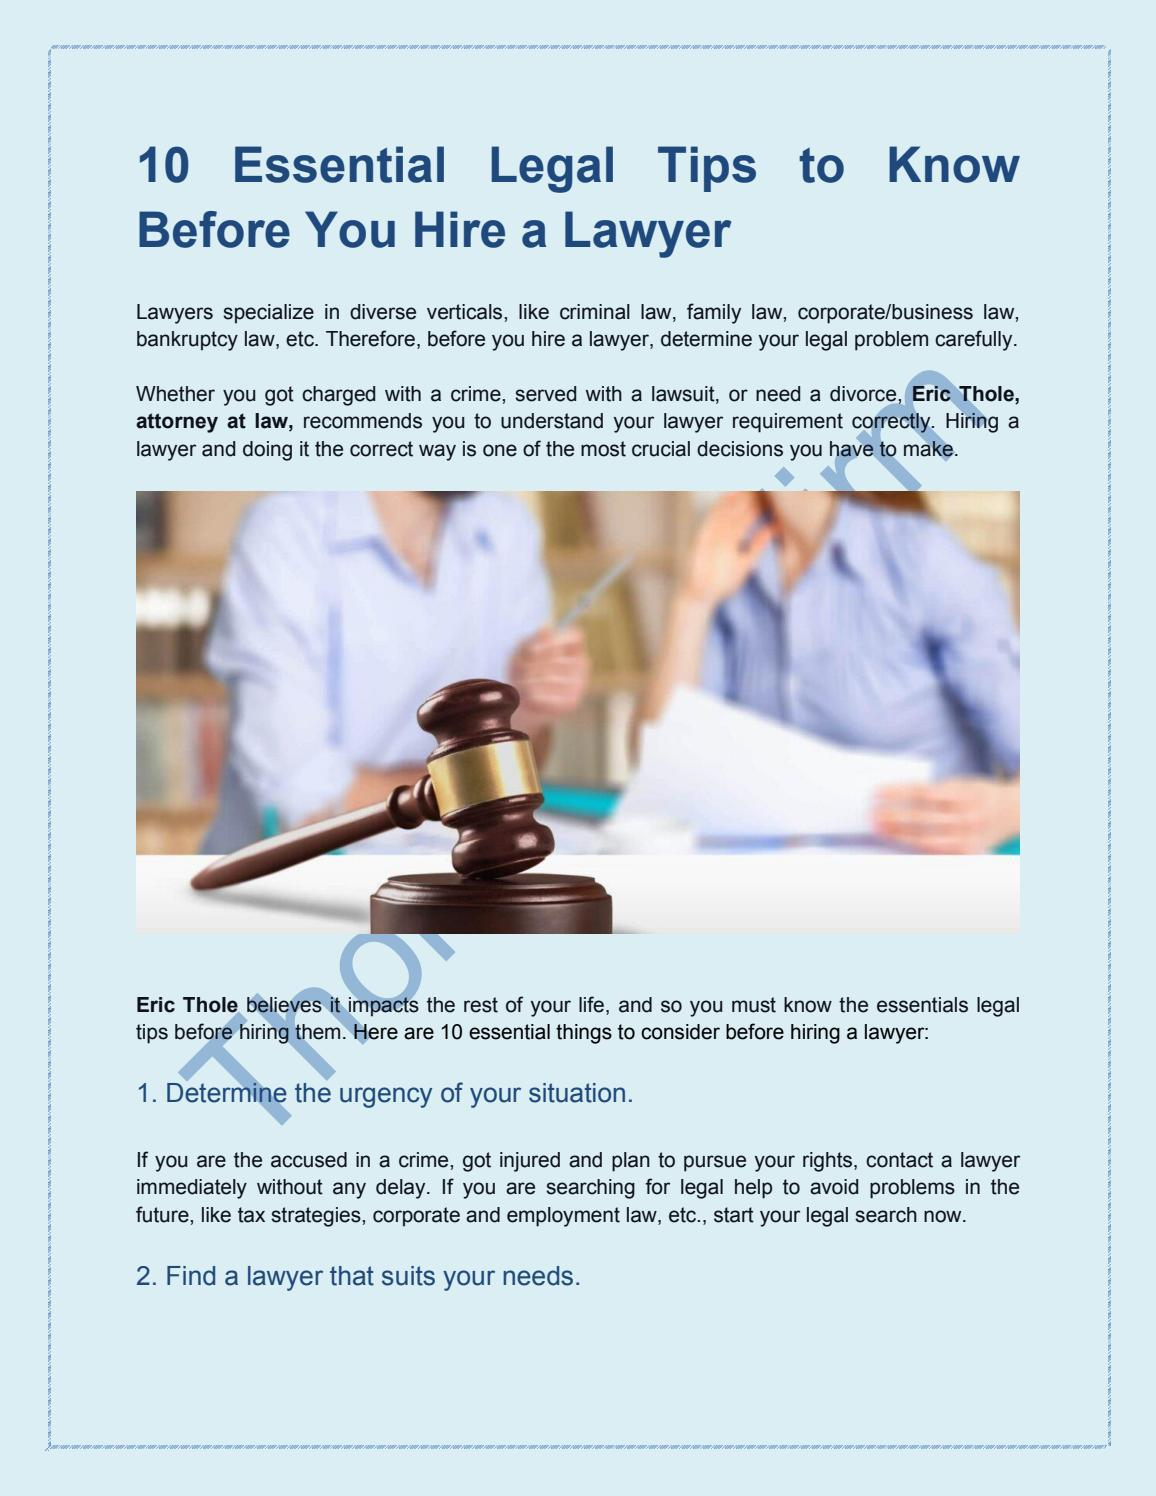 10 Essential Legal Tips to Know Before You Hire a Lawyer